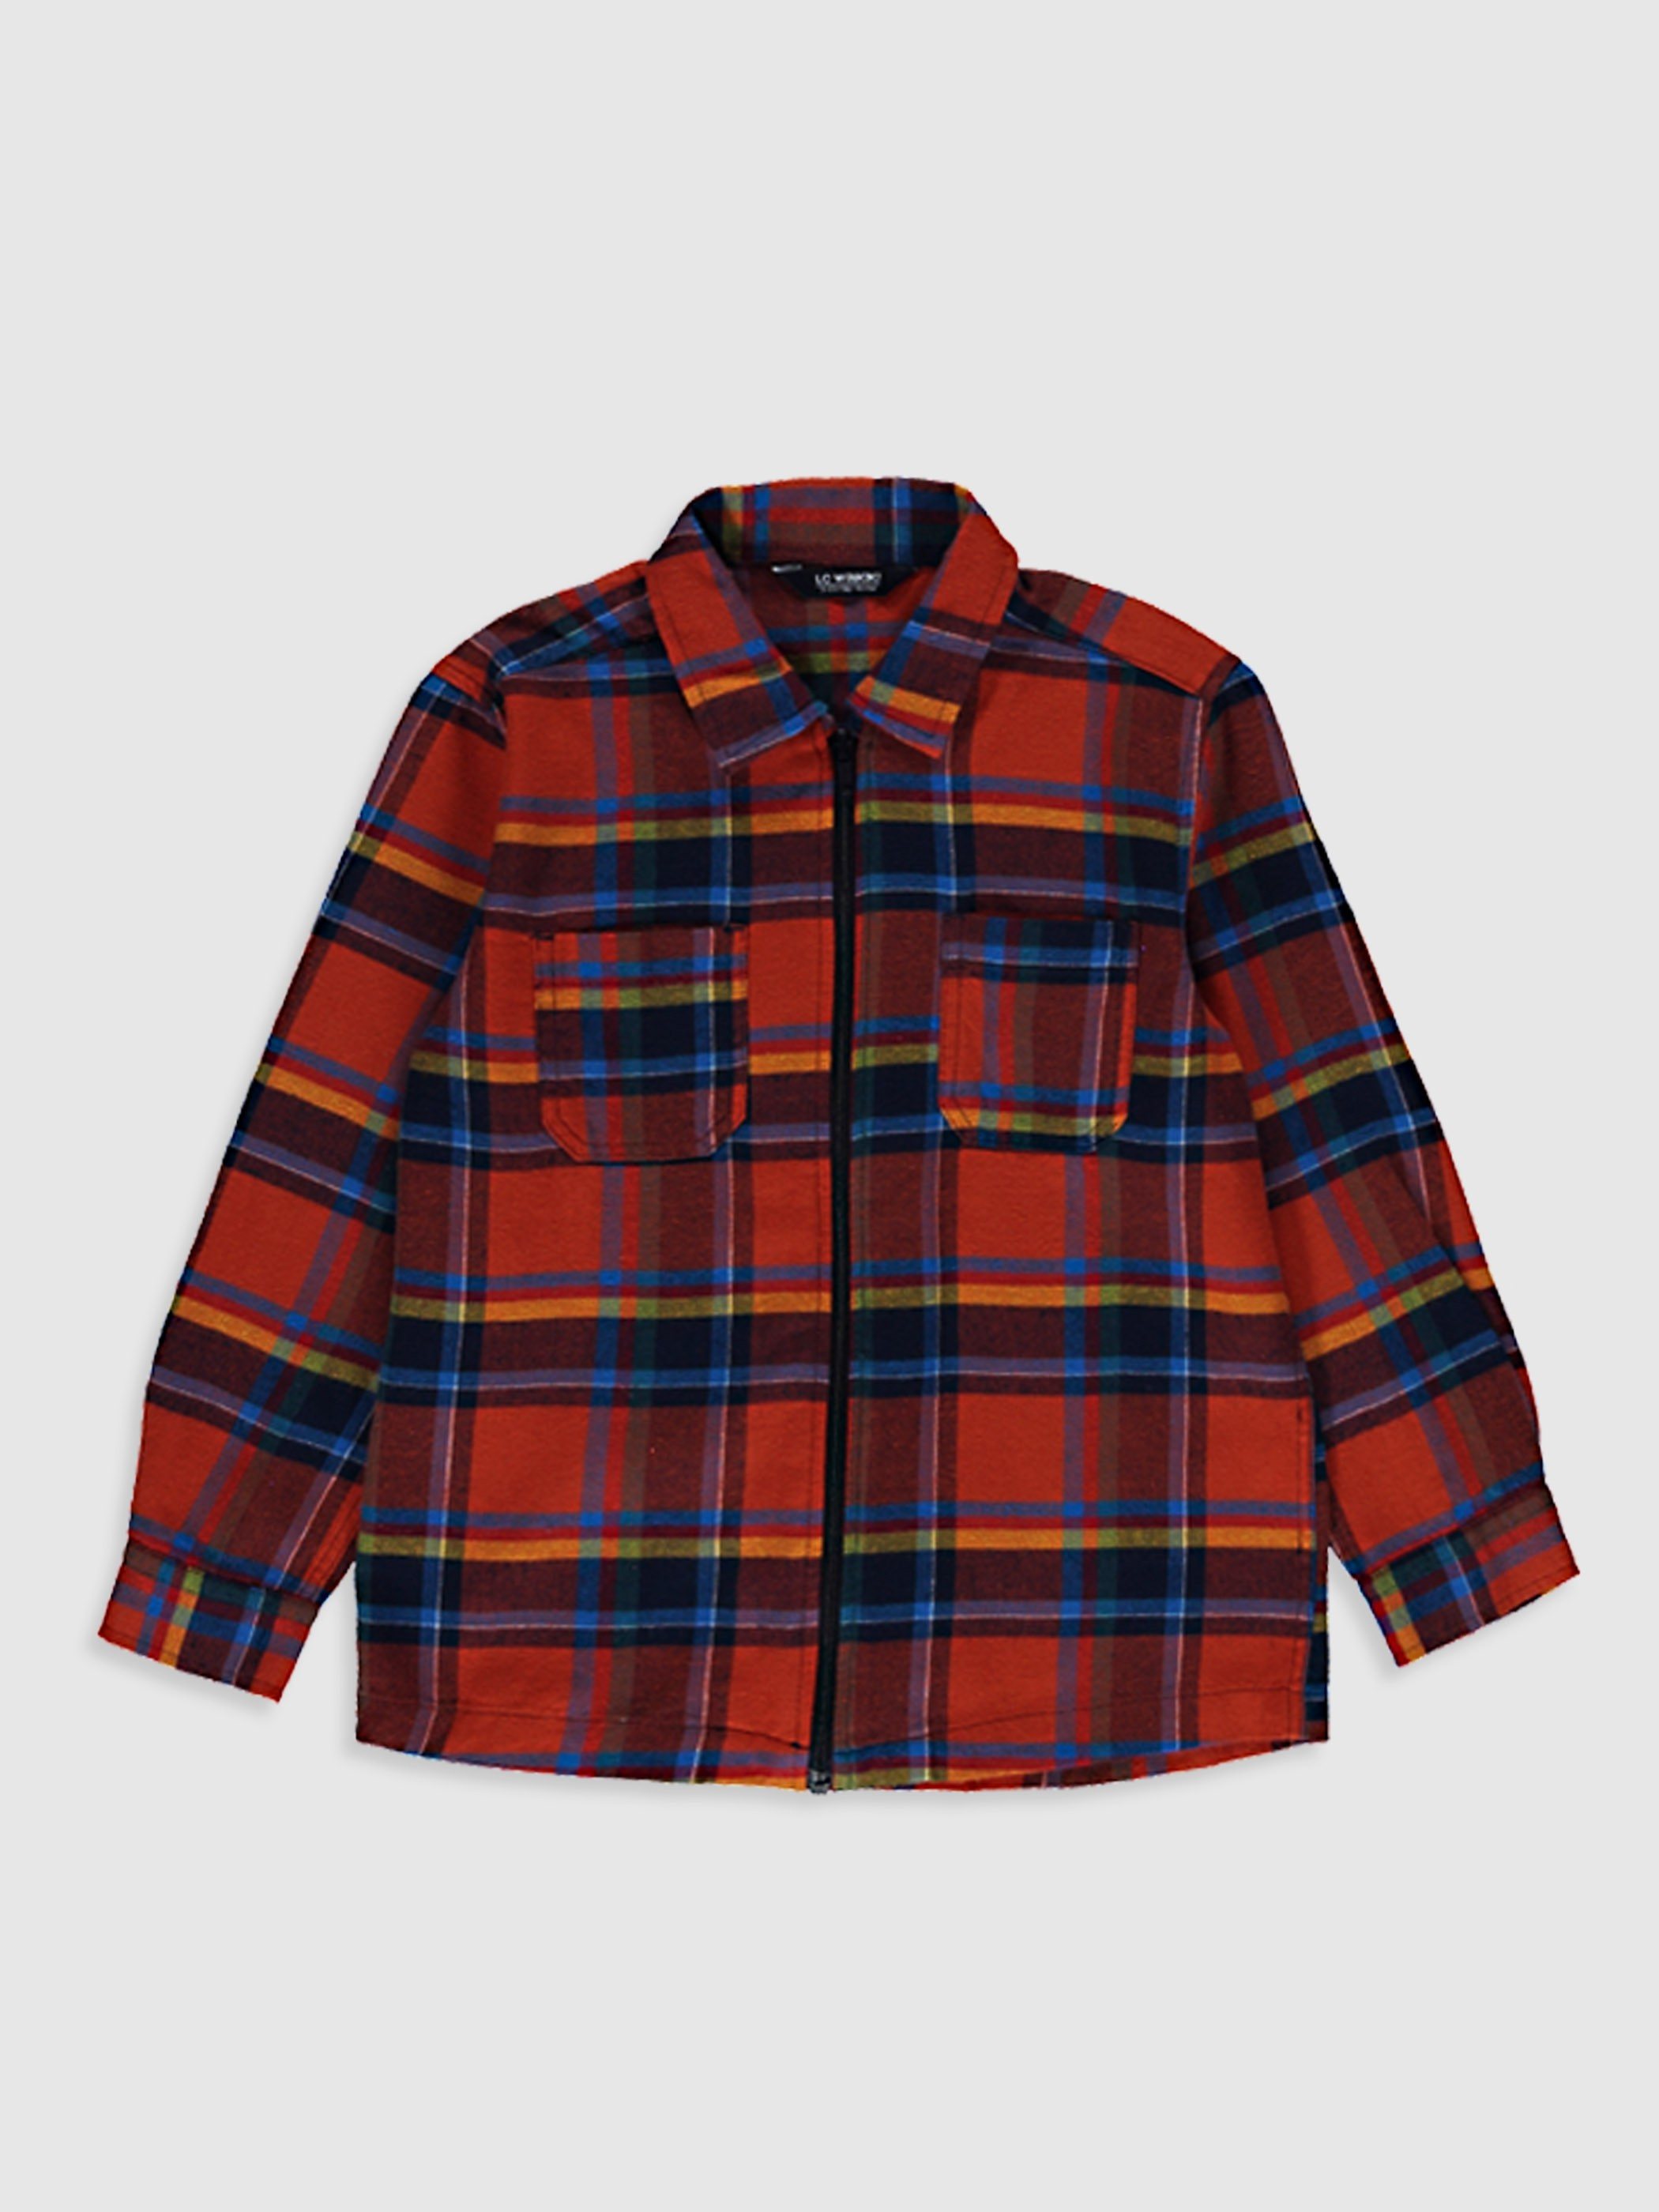 ORANGE - Boy's Chequered Shirt - 0WG862Z4